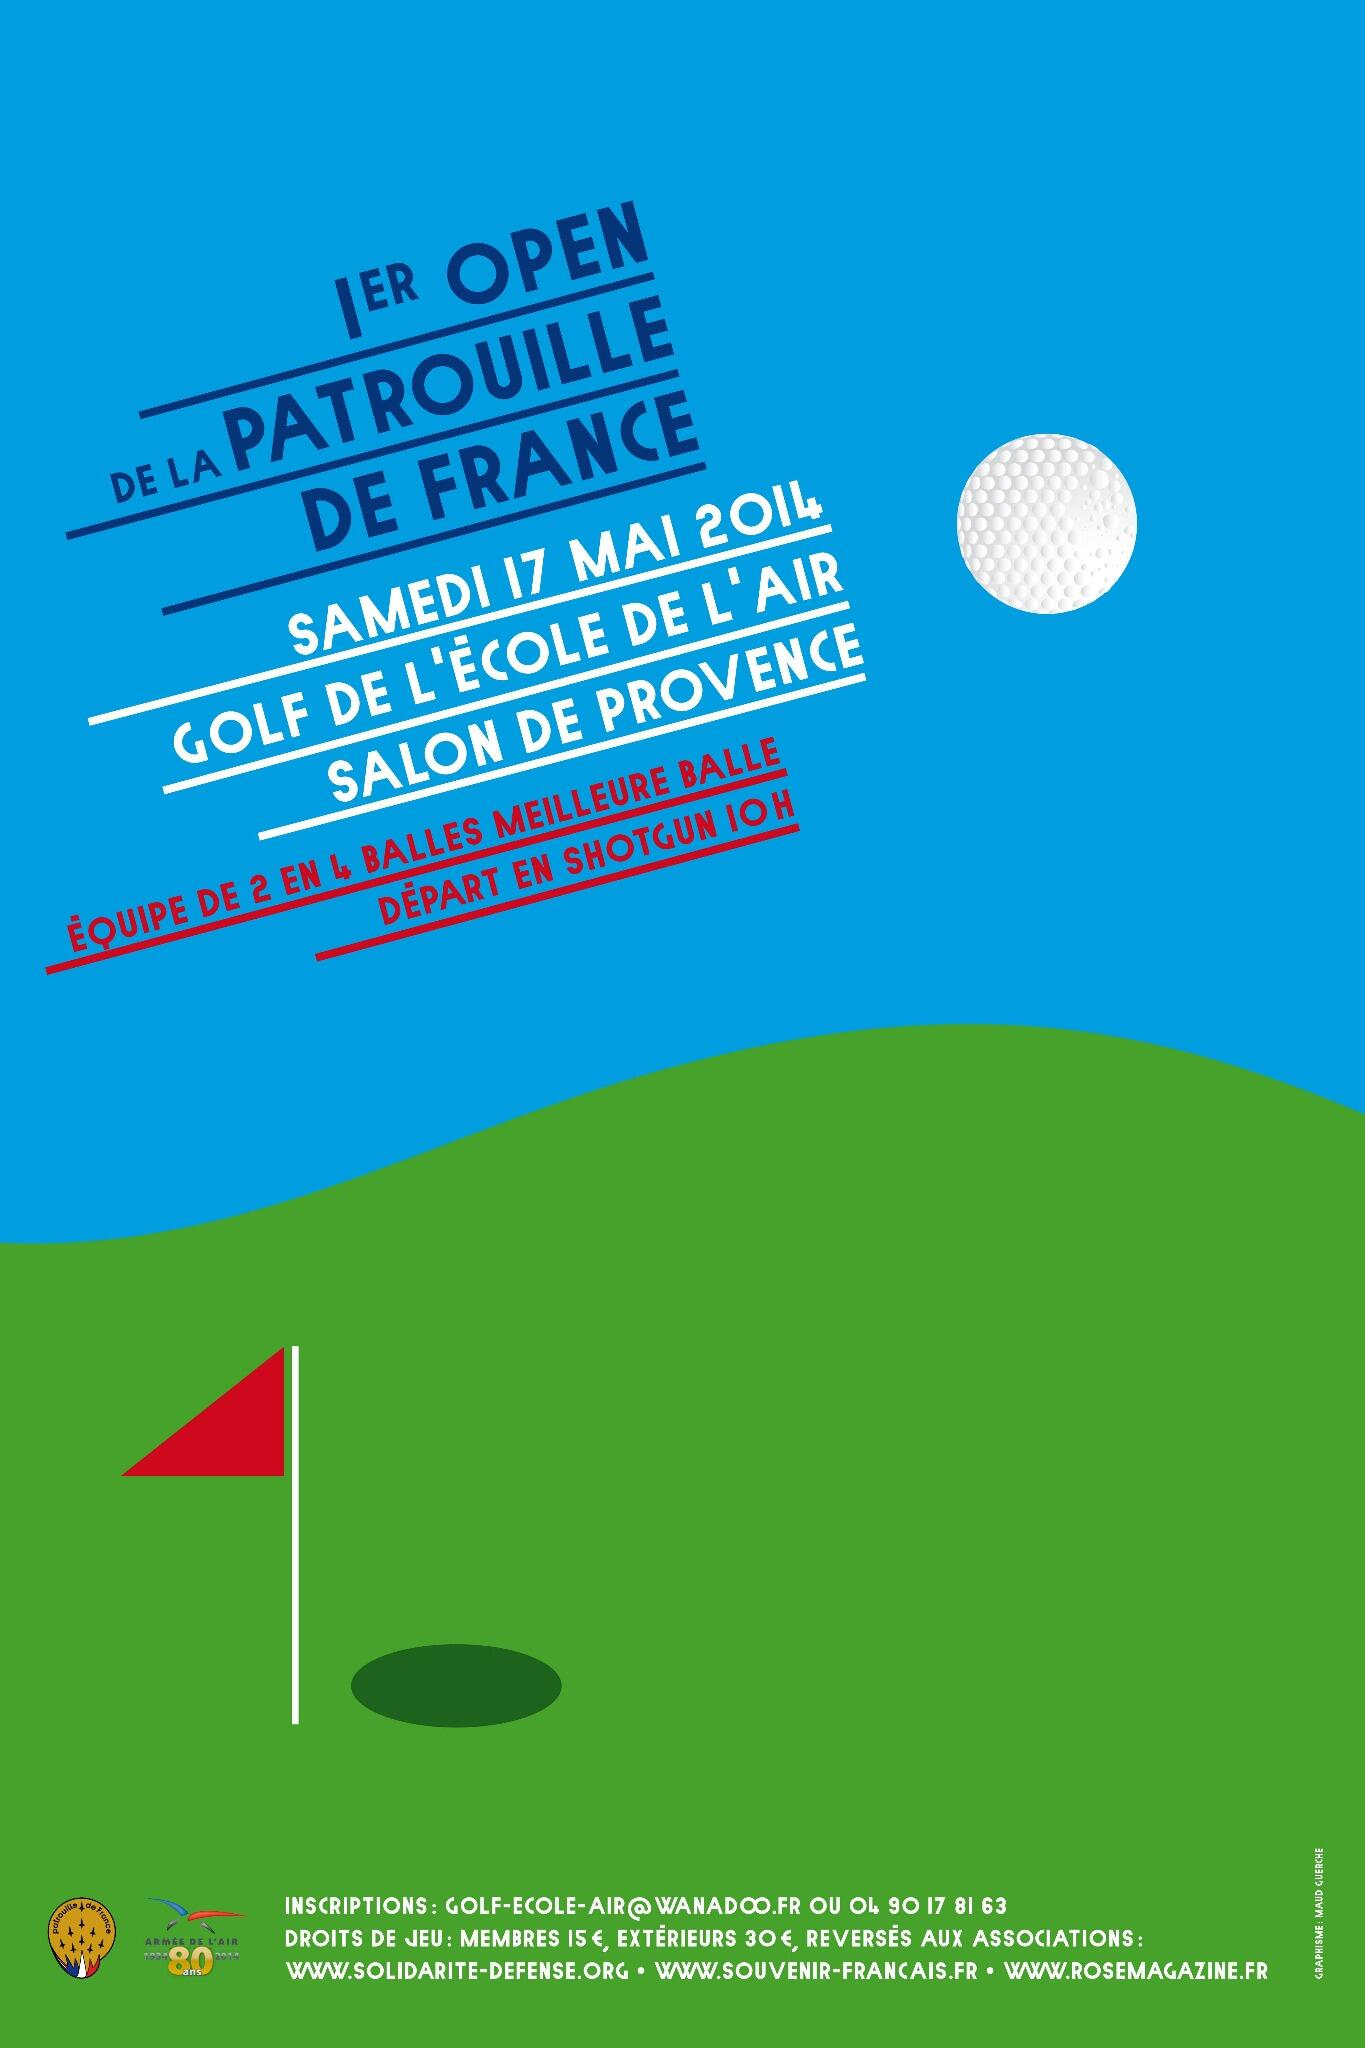 Golf Salon De Provence Patrouille De France Ensemble En Vol On Twitter